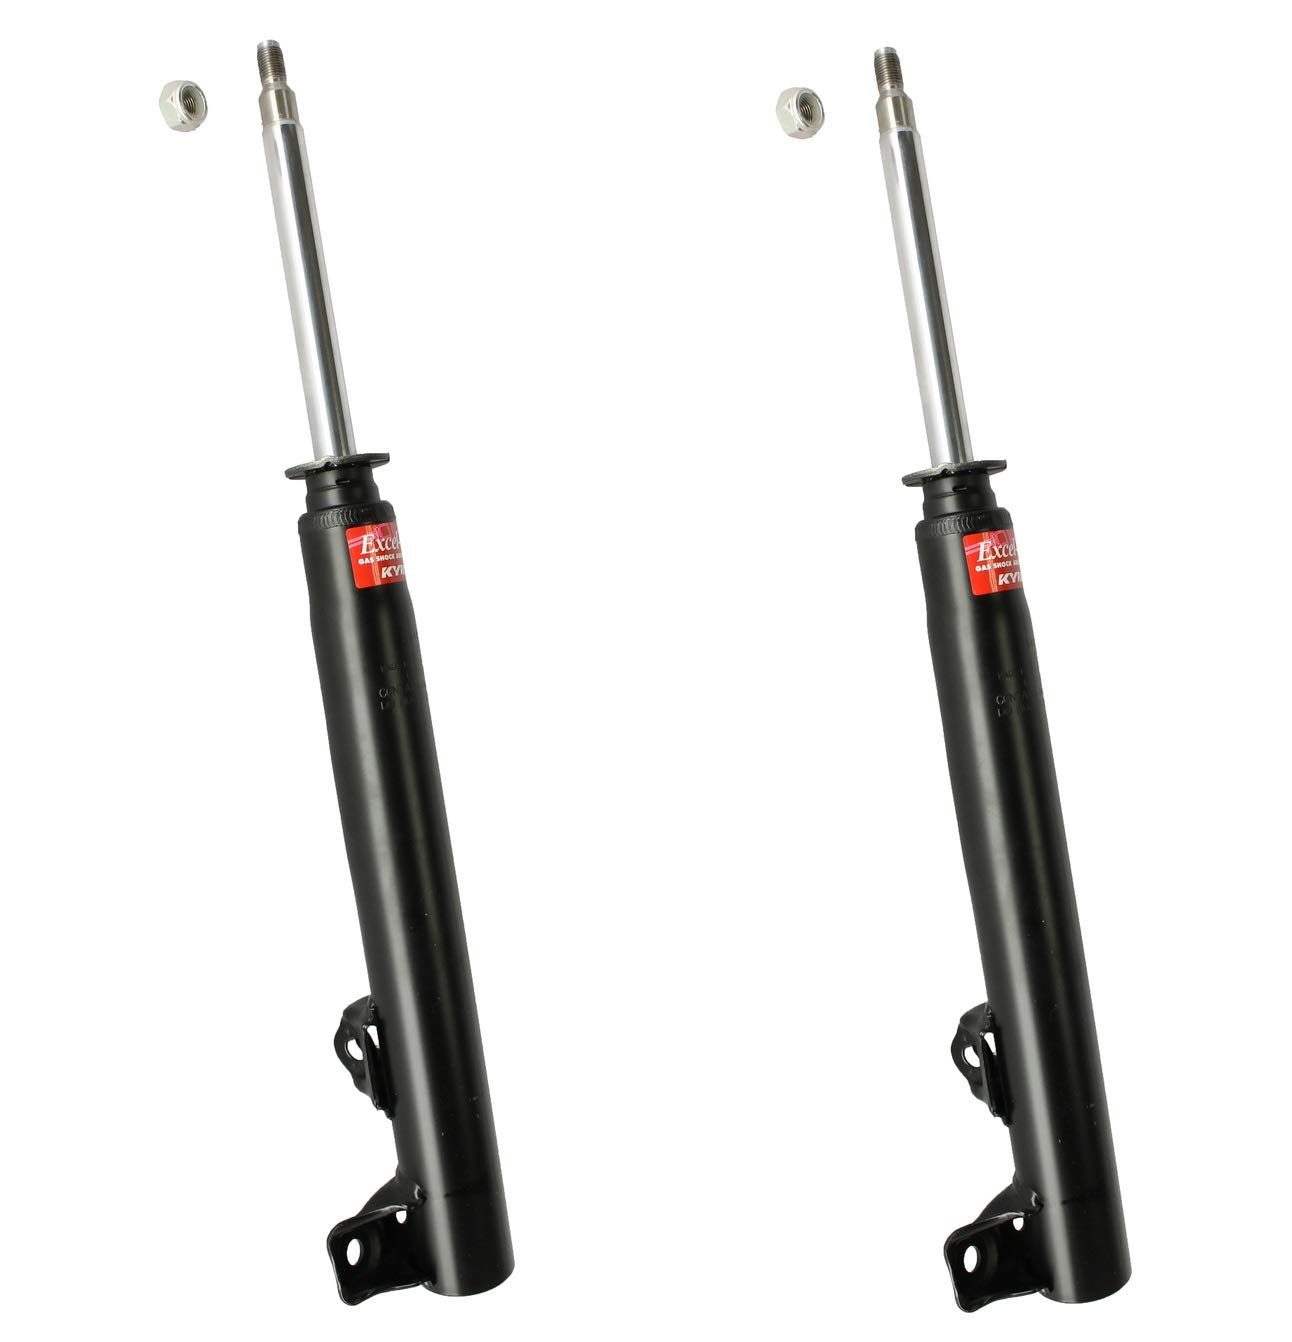 Pair Set of 2 Front KYB Excel-G Ssuspension Struts For Mercedes W201 W124 190D 190E 260E 300CE 300D 300E 300TE E320 E420 E500